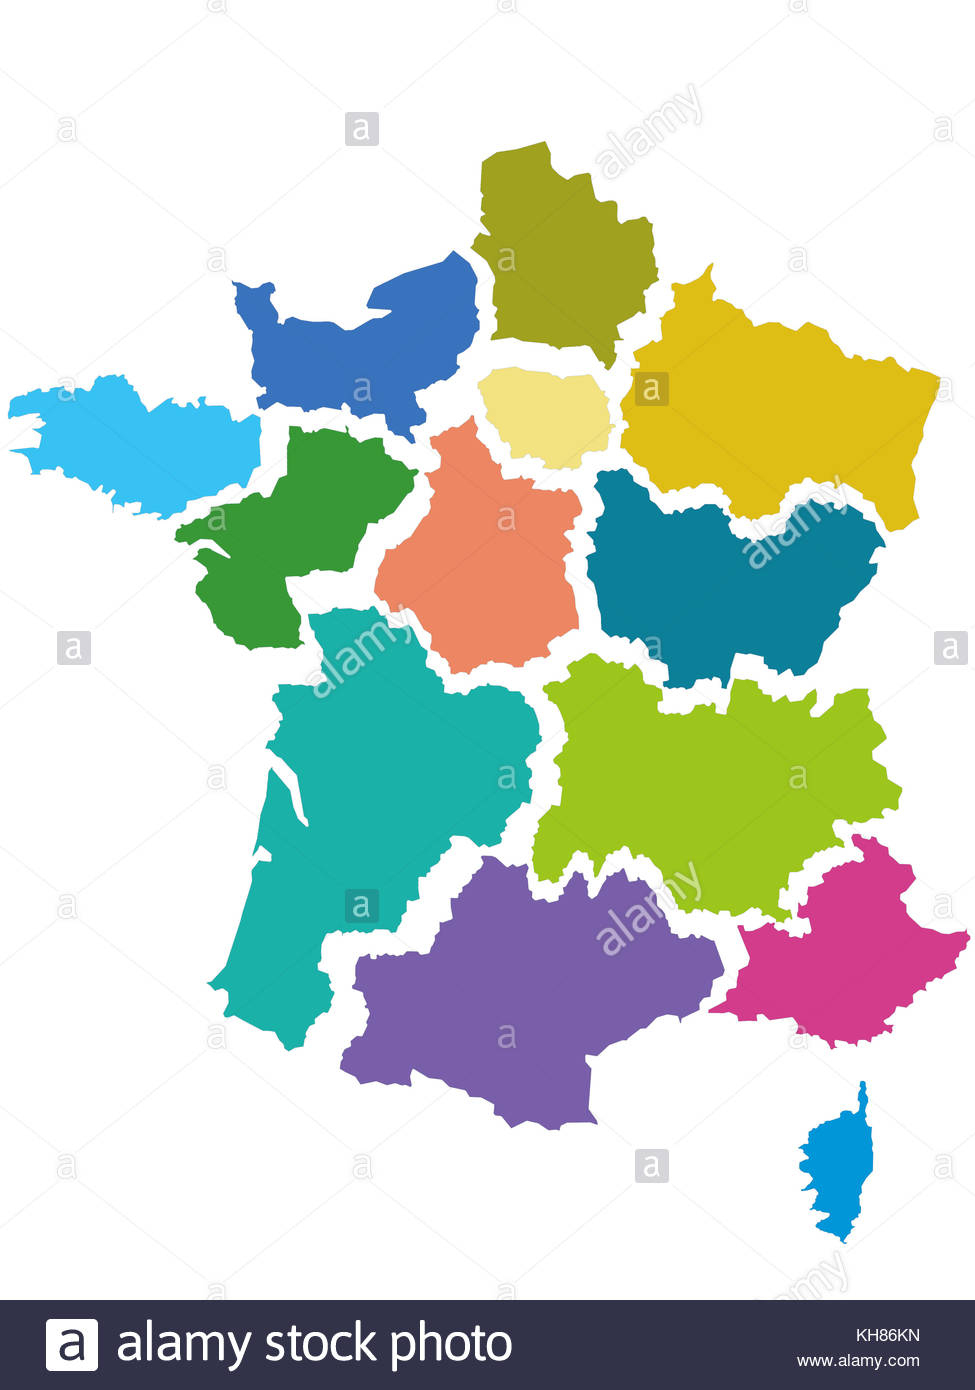 Map Of France With The 13 Regions, Adopted By The Assemblee destiné Les 13 Régions